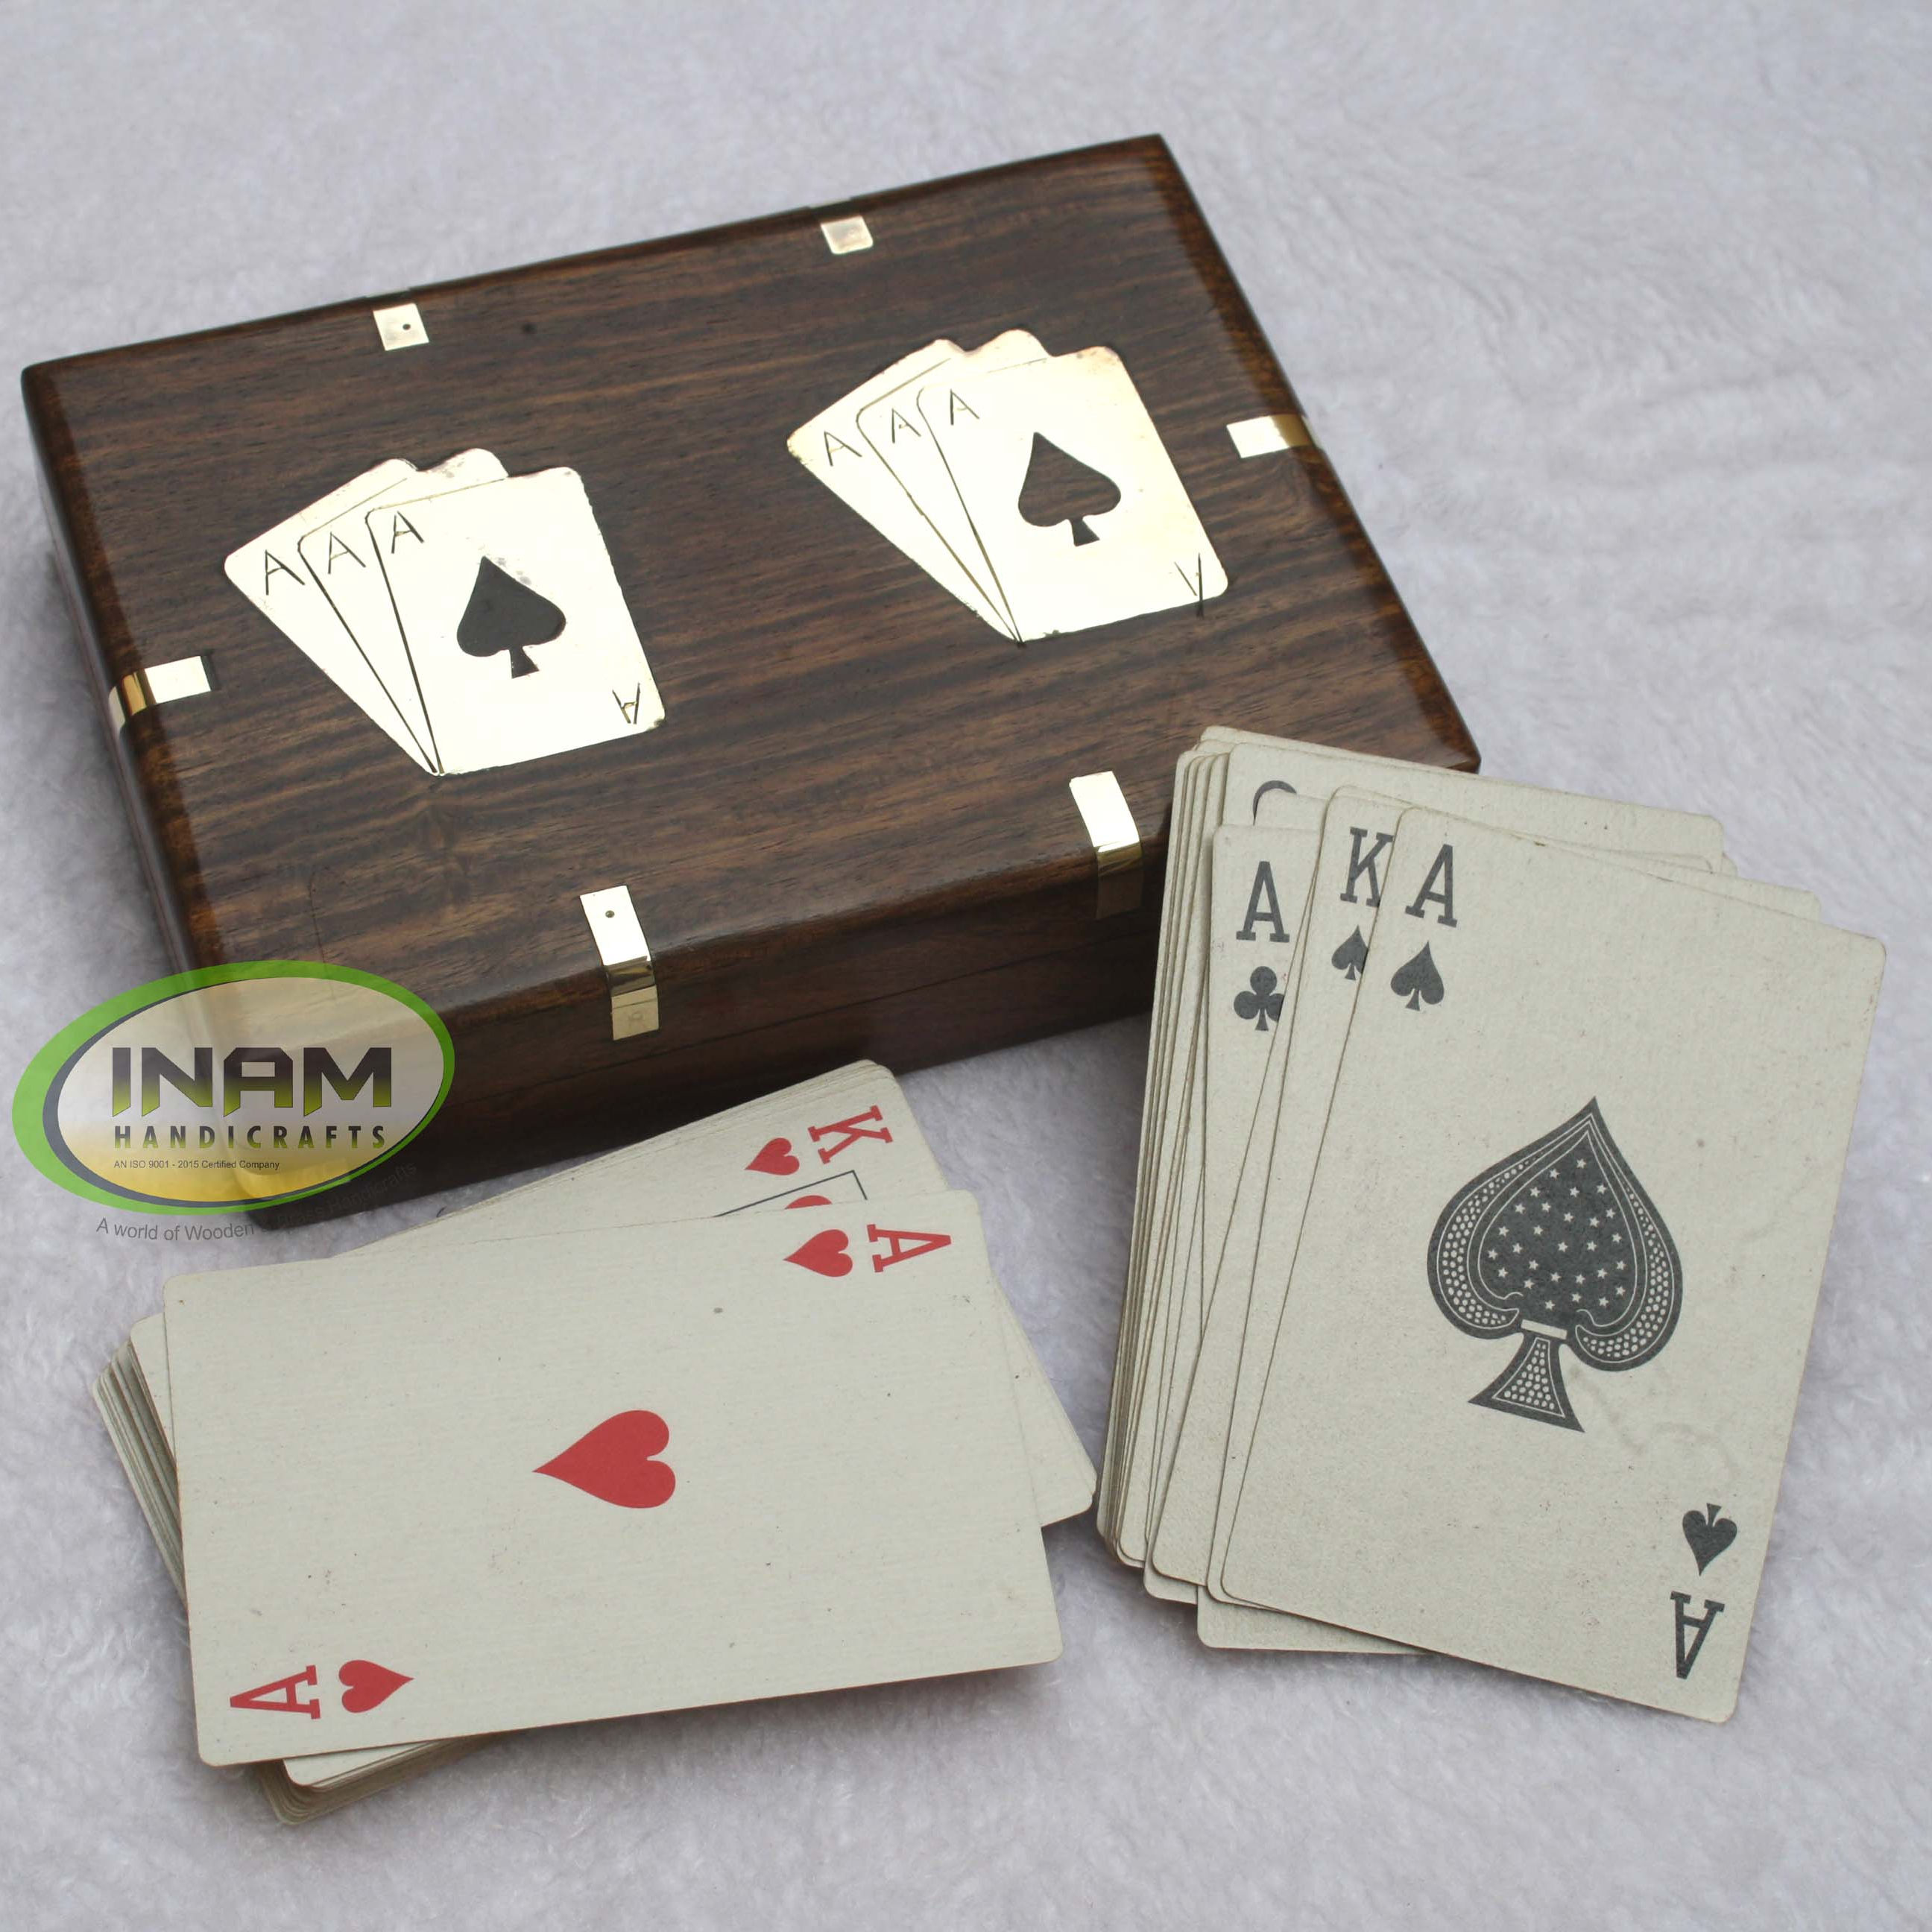 Extreme quality Exclusive design sheesham wood box with playing cards / Box size 6x4.5 inches